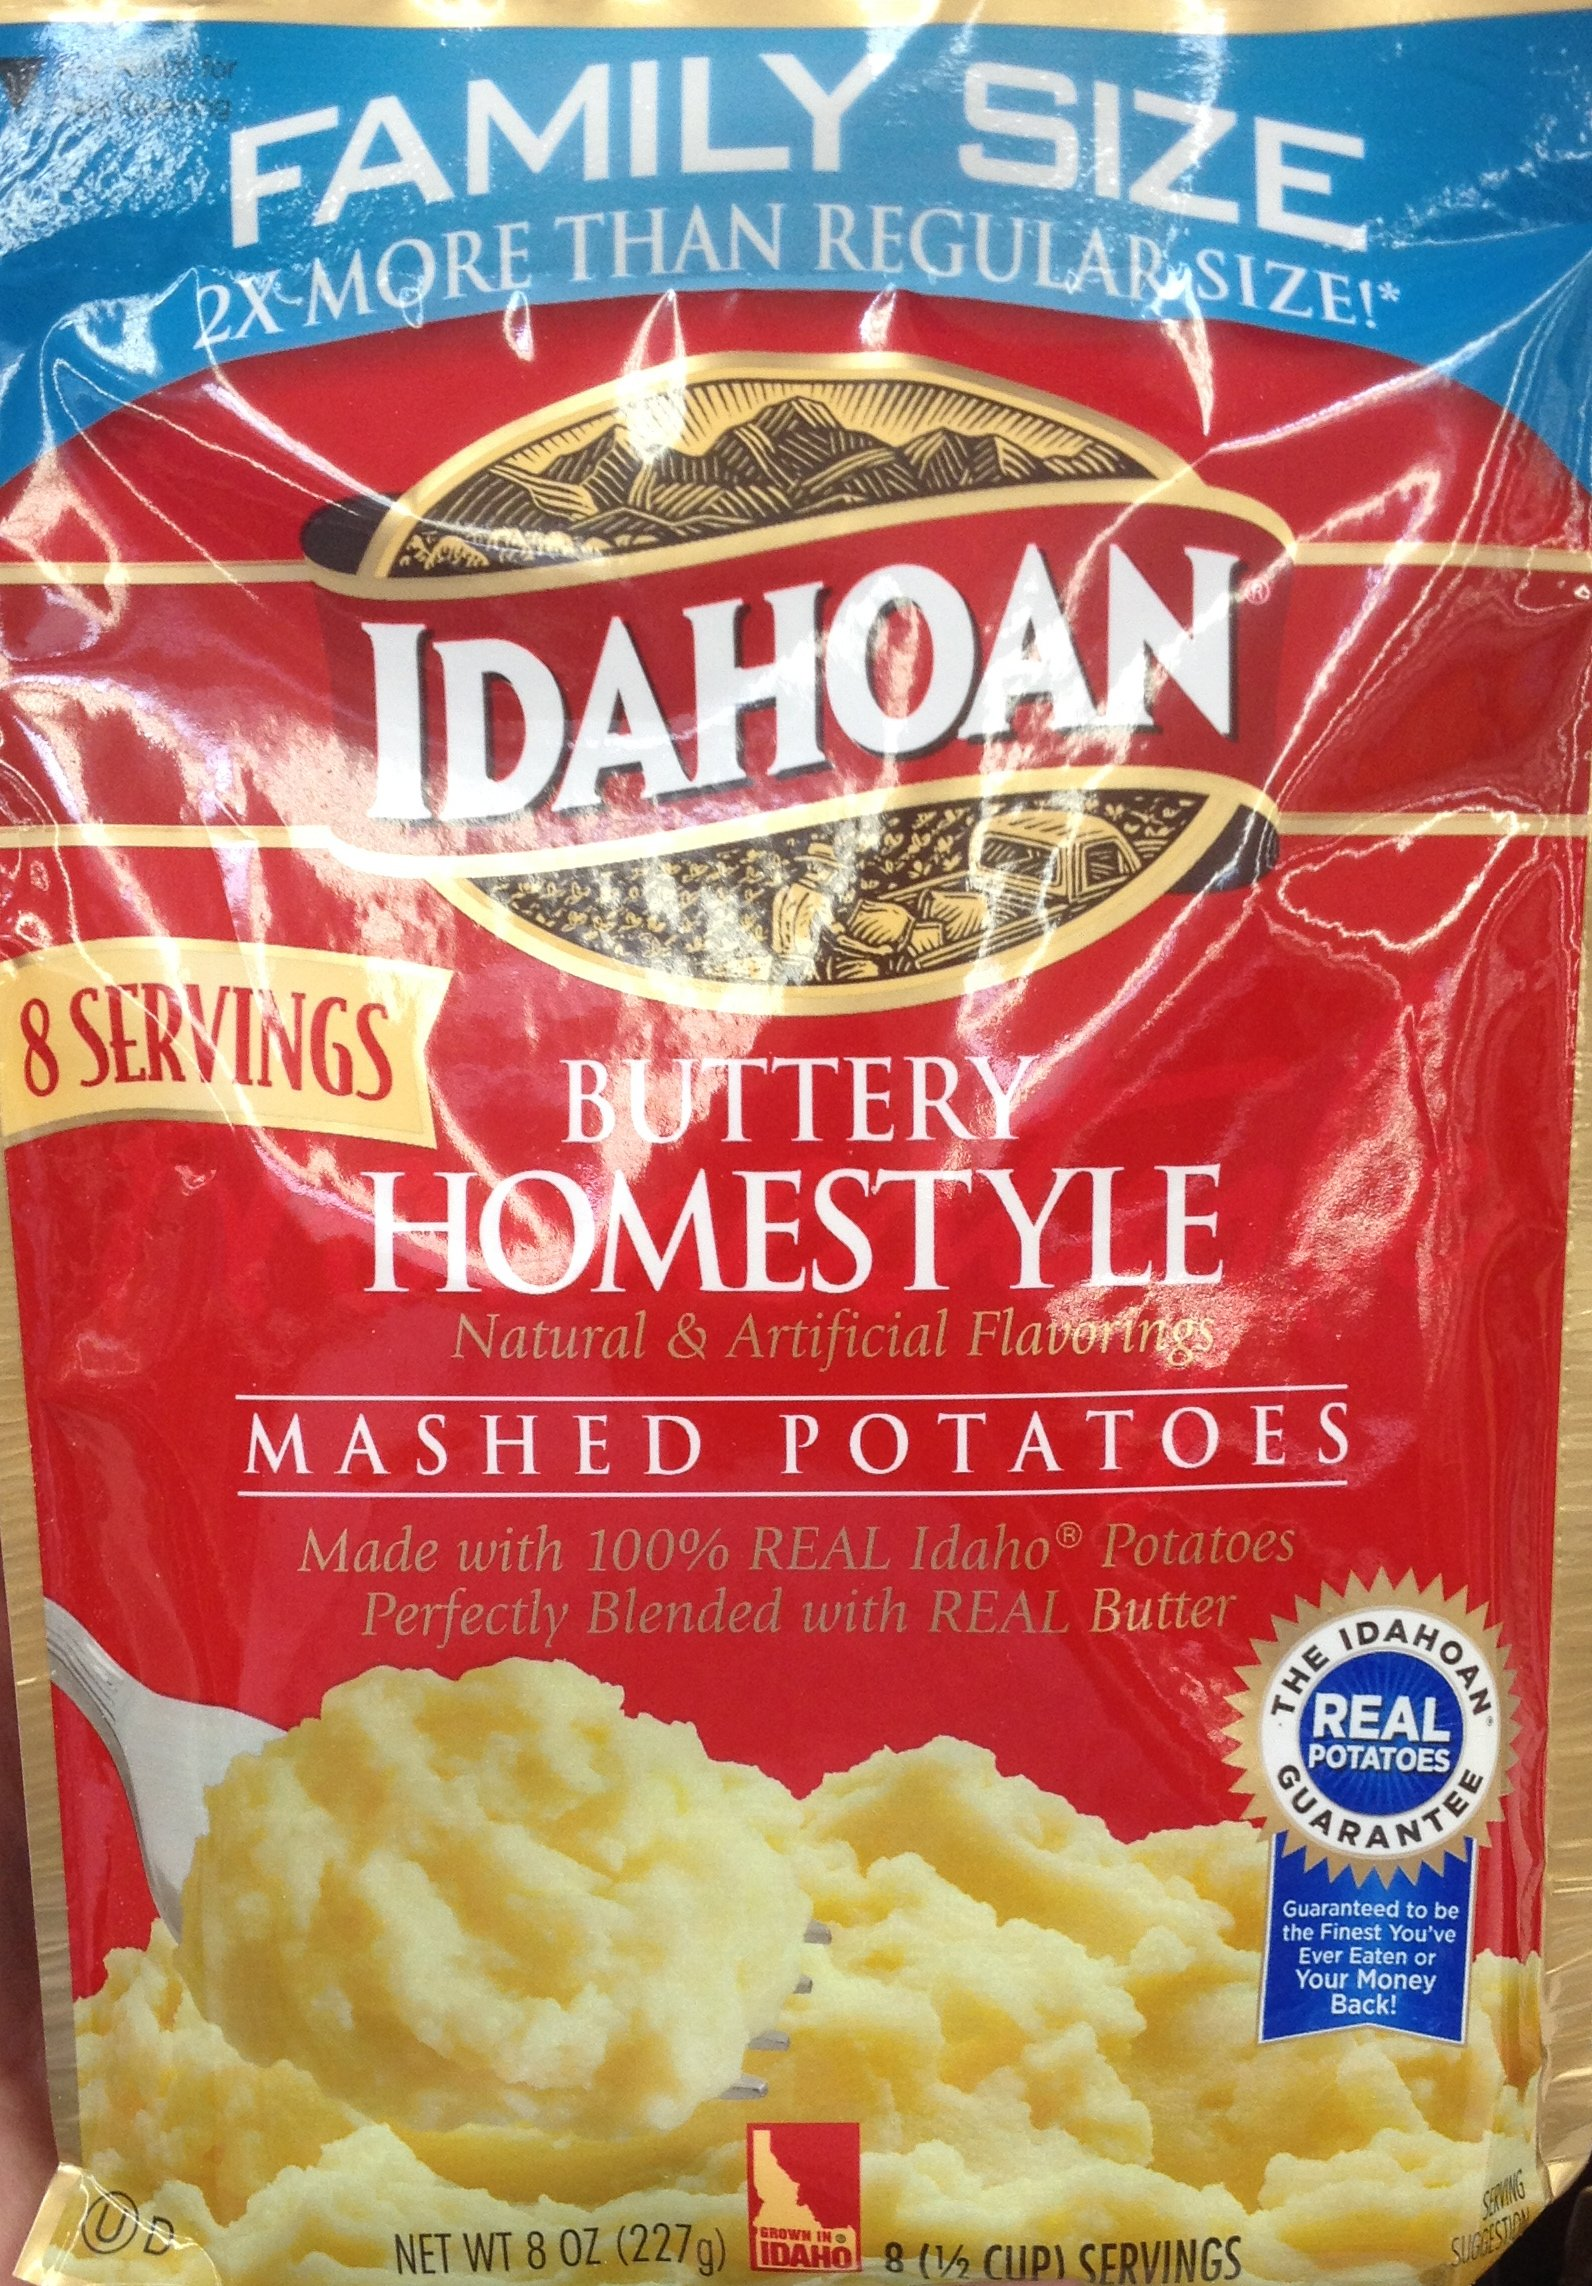 Idahoan Foods Buttery Homestyle Mashed Potatoes, 8 oz